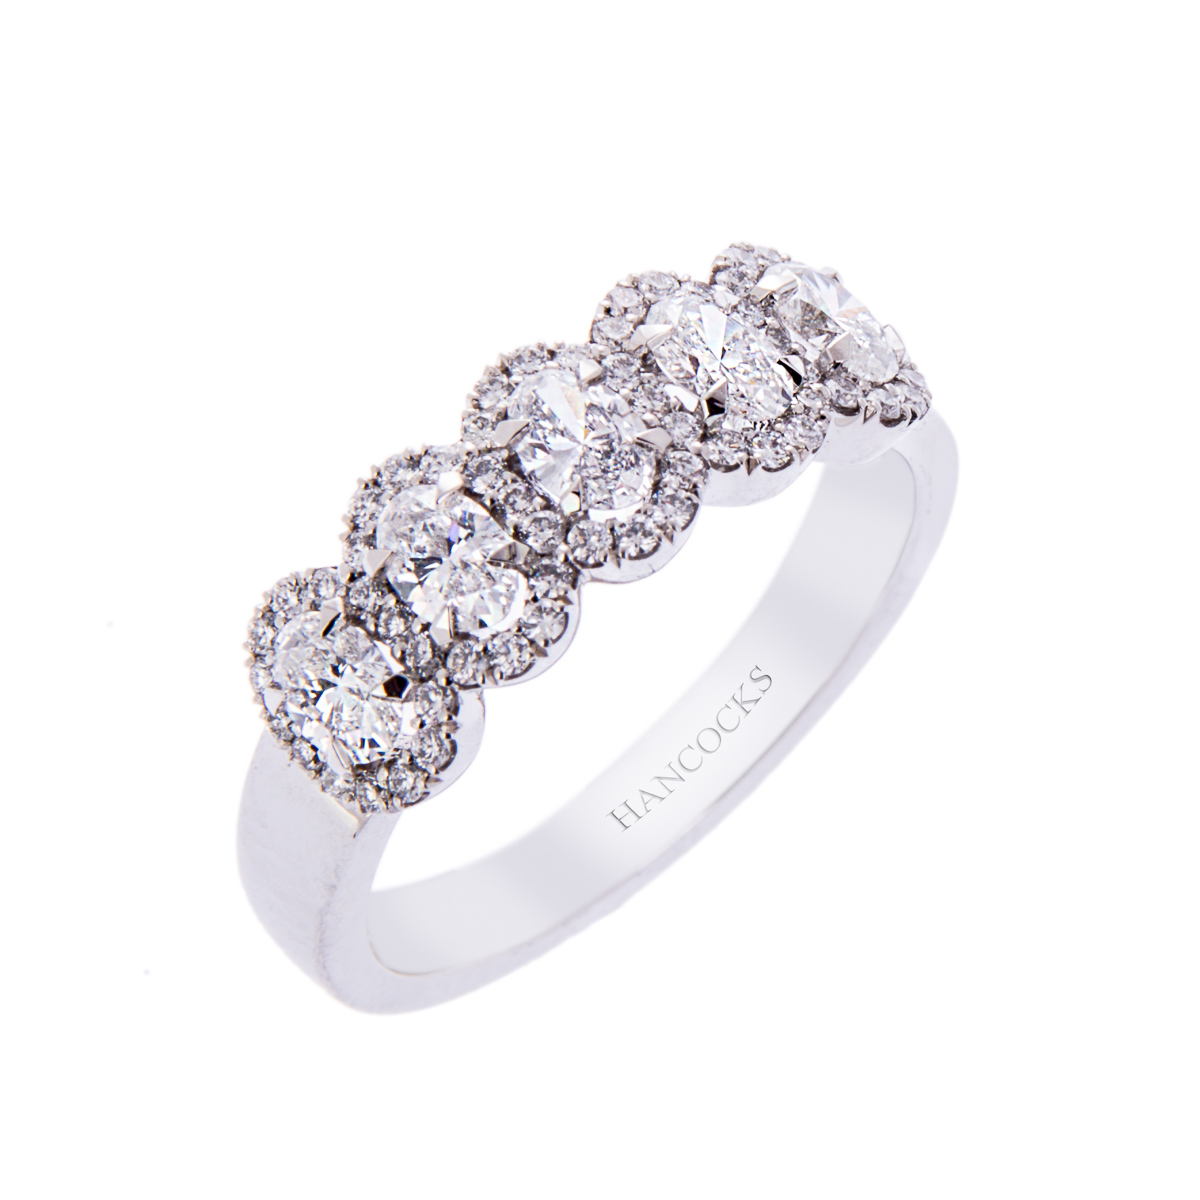 H140920 45 oval diamond 5 stone halo eternity ring